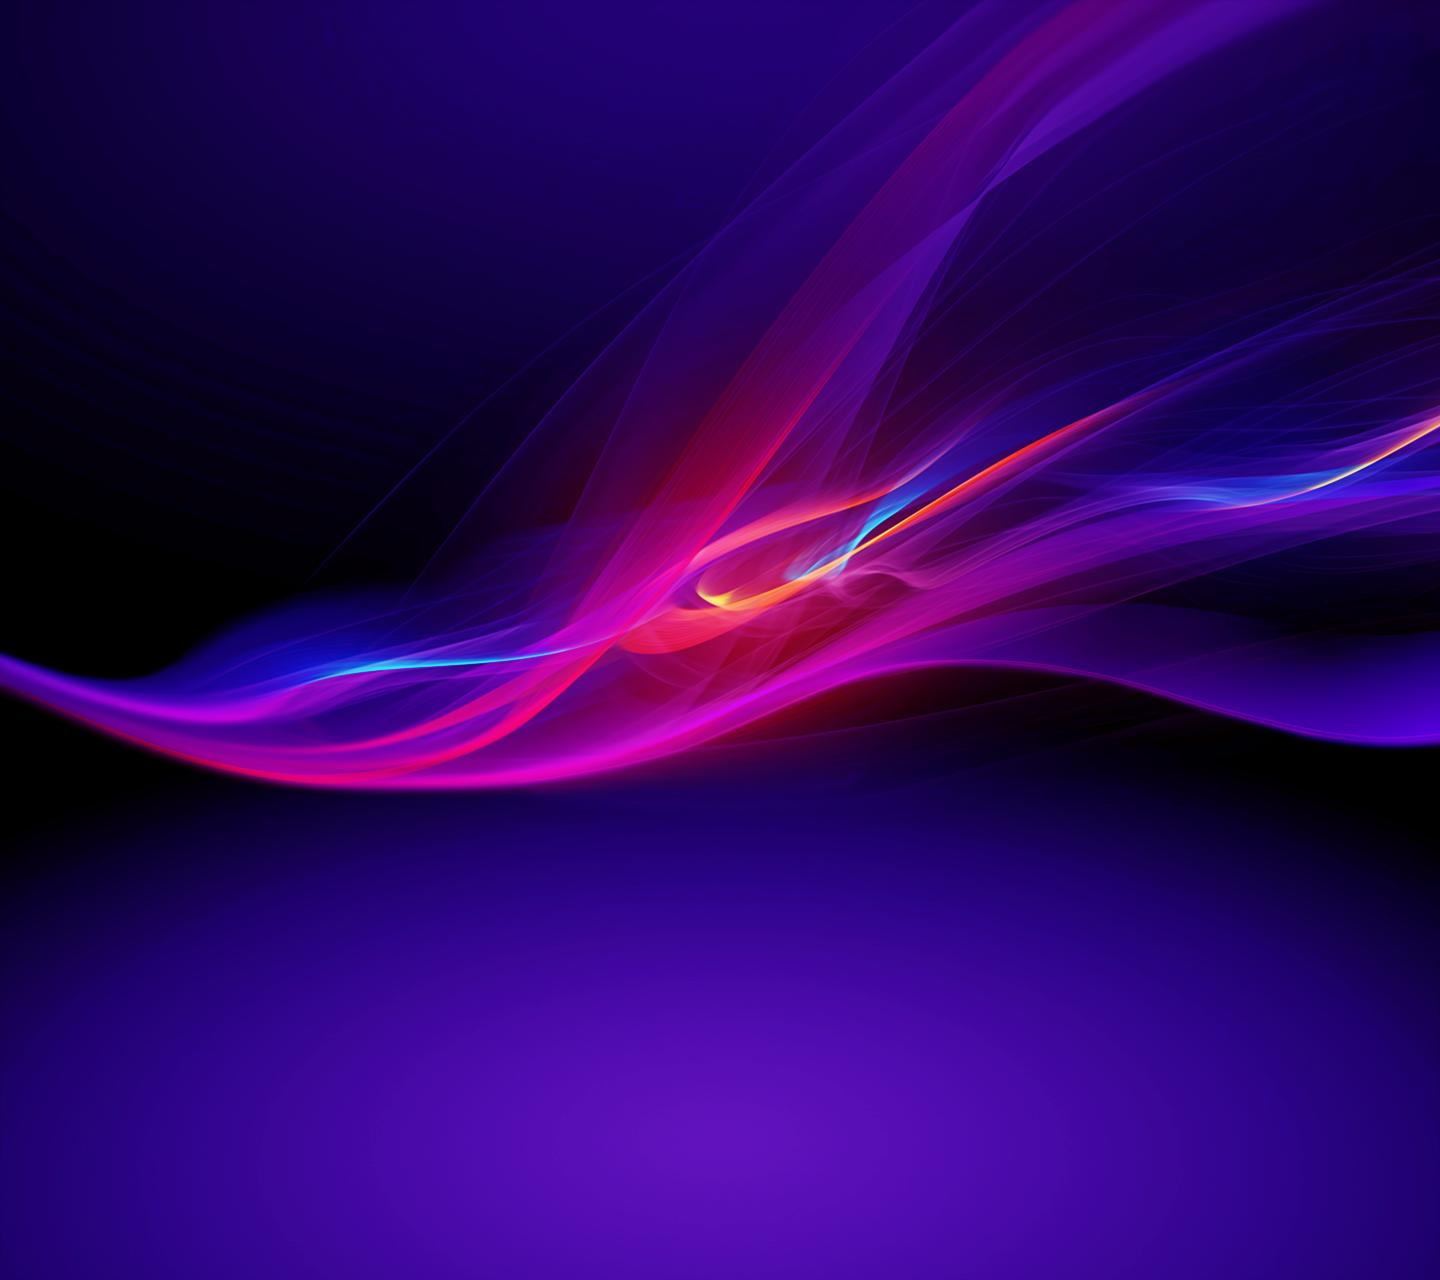 Description Download Sony Xperia Z HD Wallpaper is a hi res Wallpaper 1440x1280